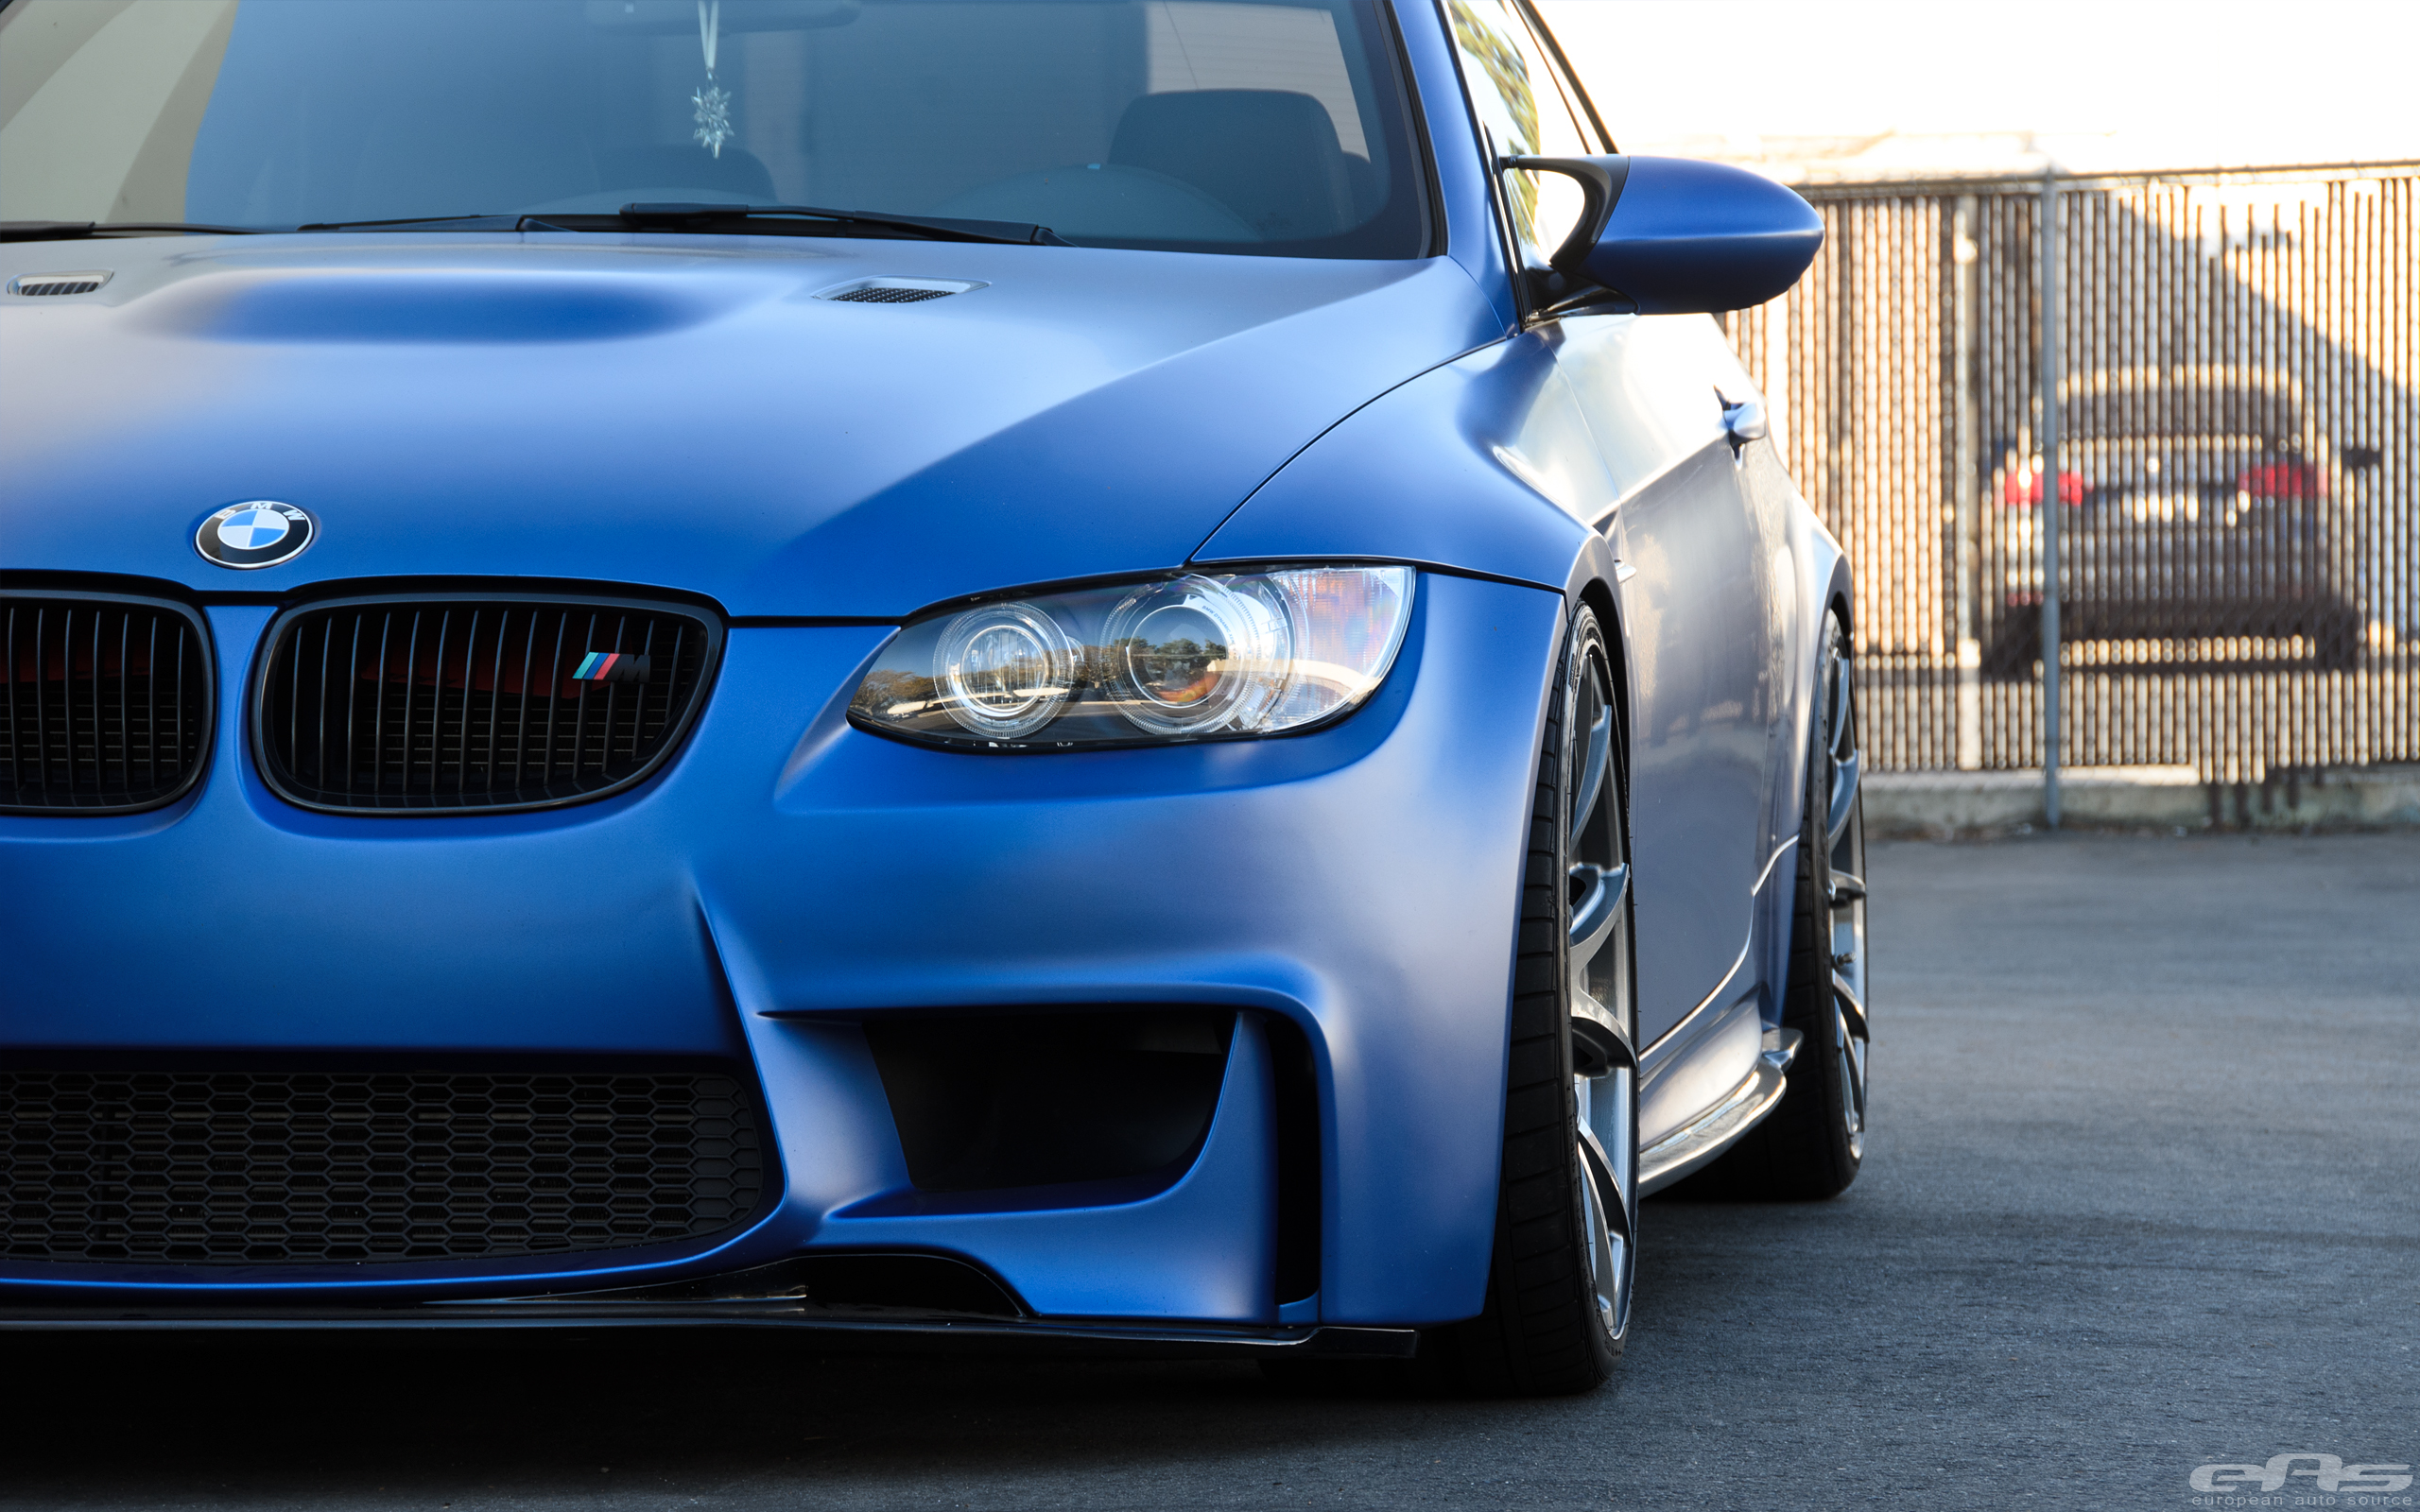 Frozen Blue Bmw E92 M3 In For Some Mods At Eas